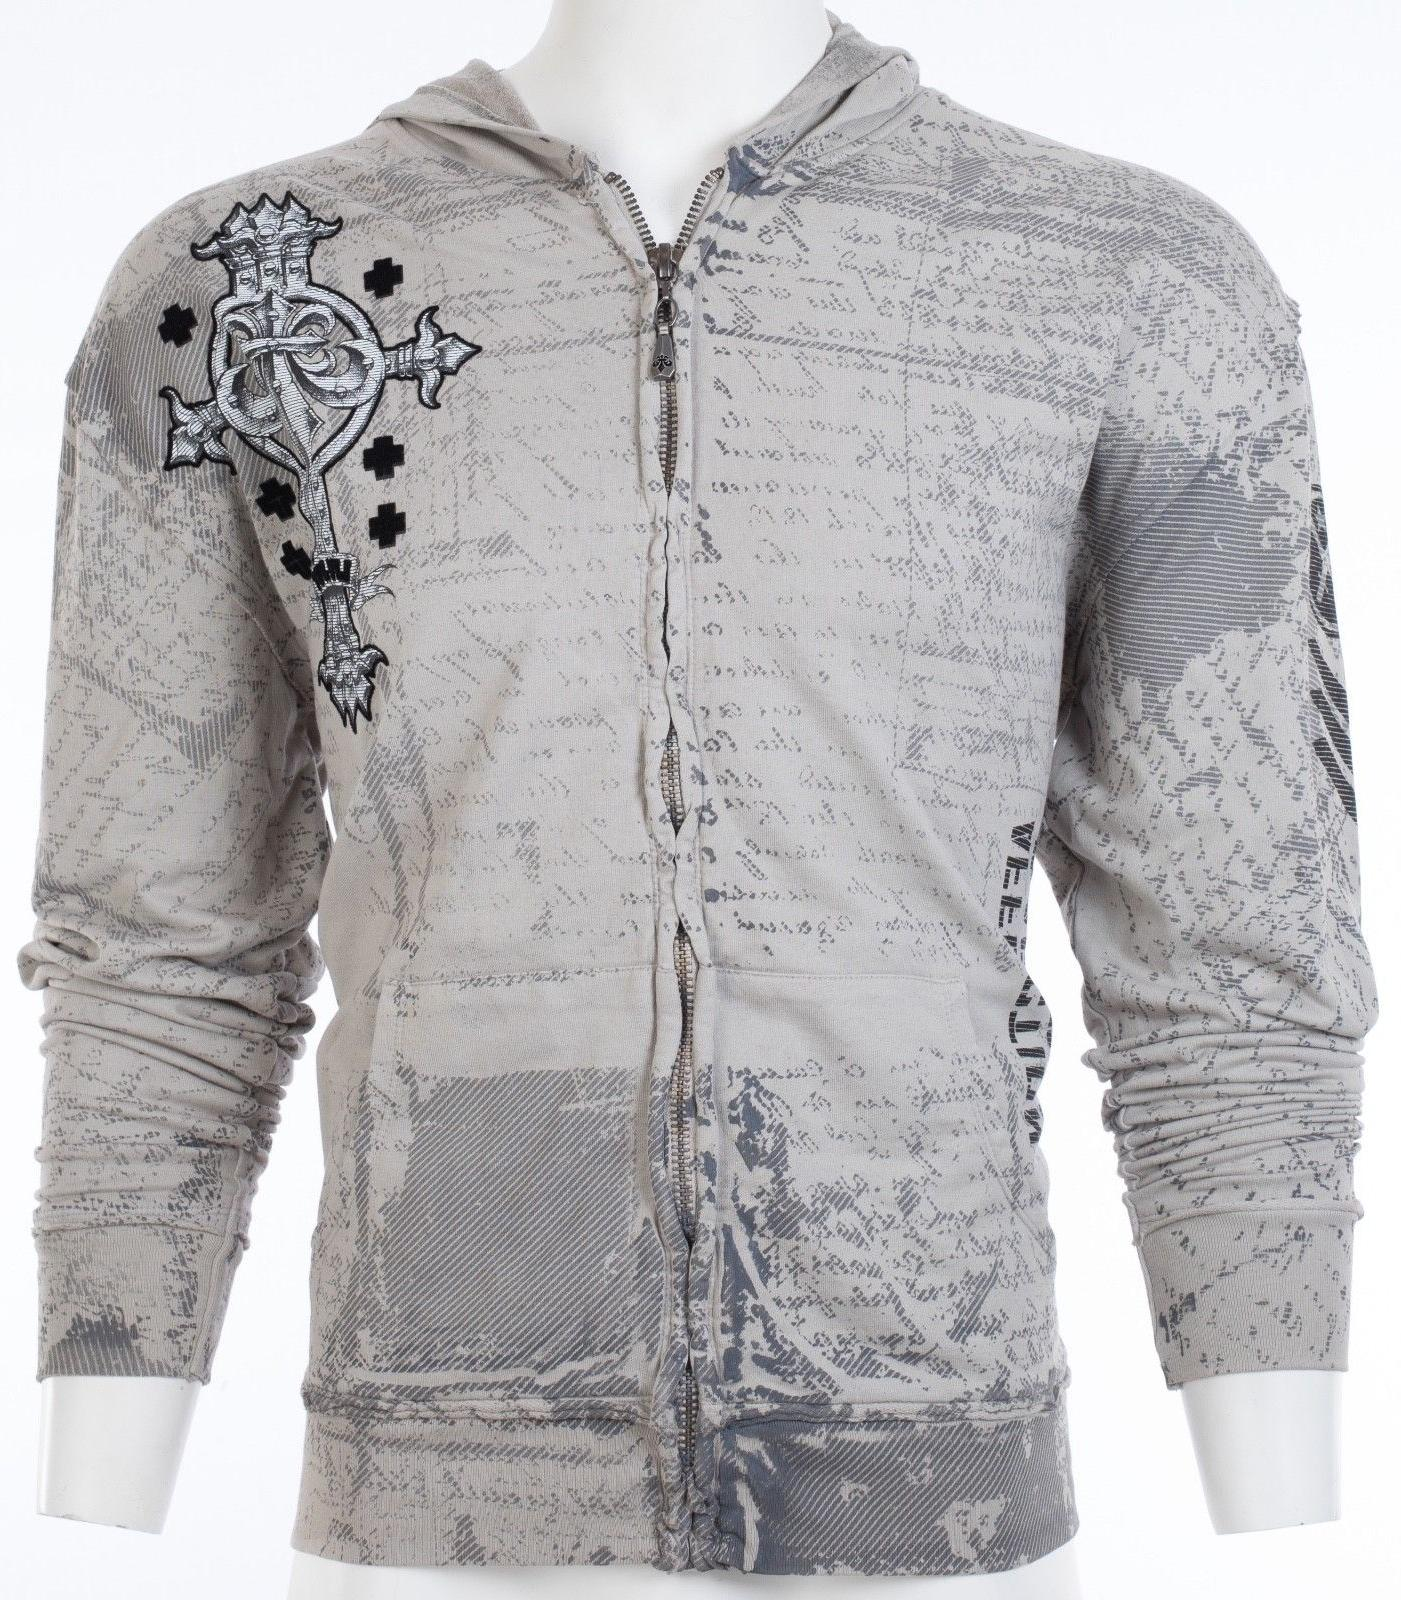 AFFLICTION Shirt UFC $78